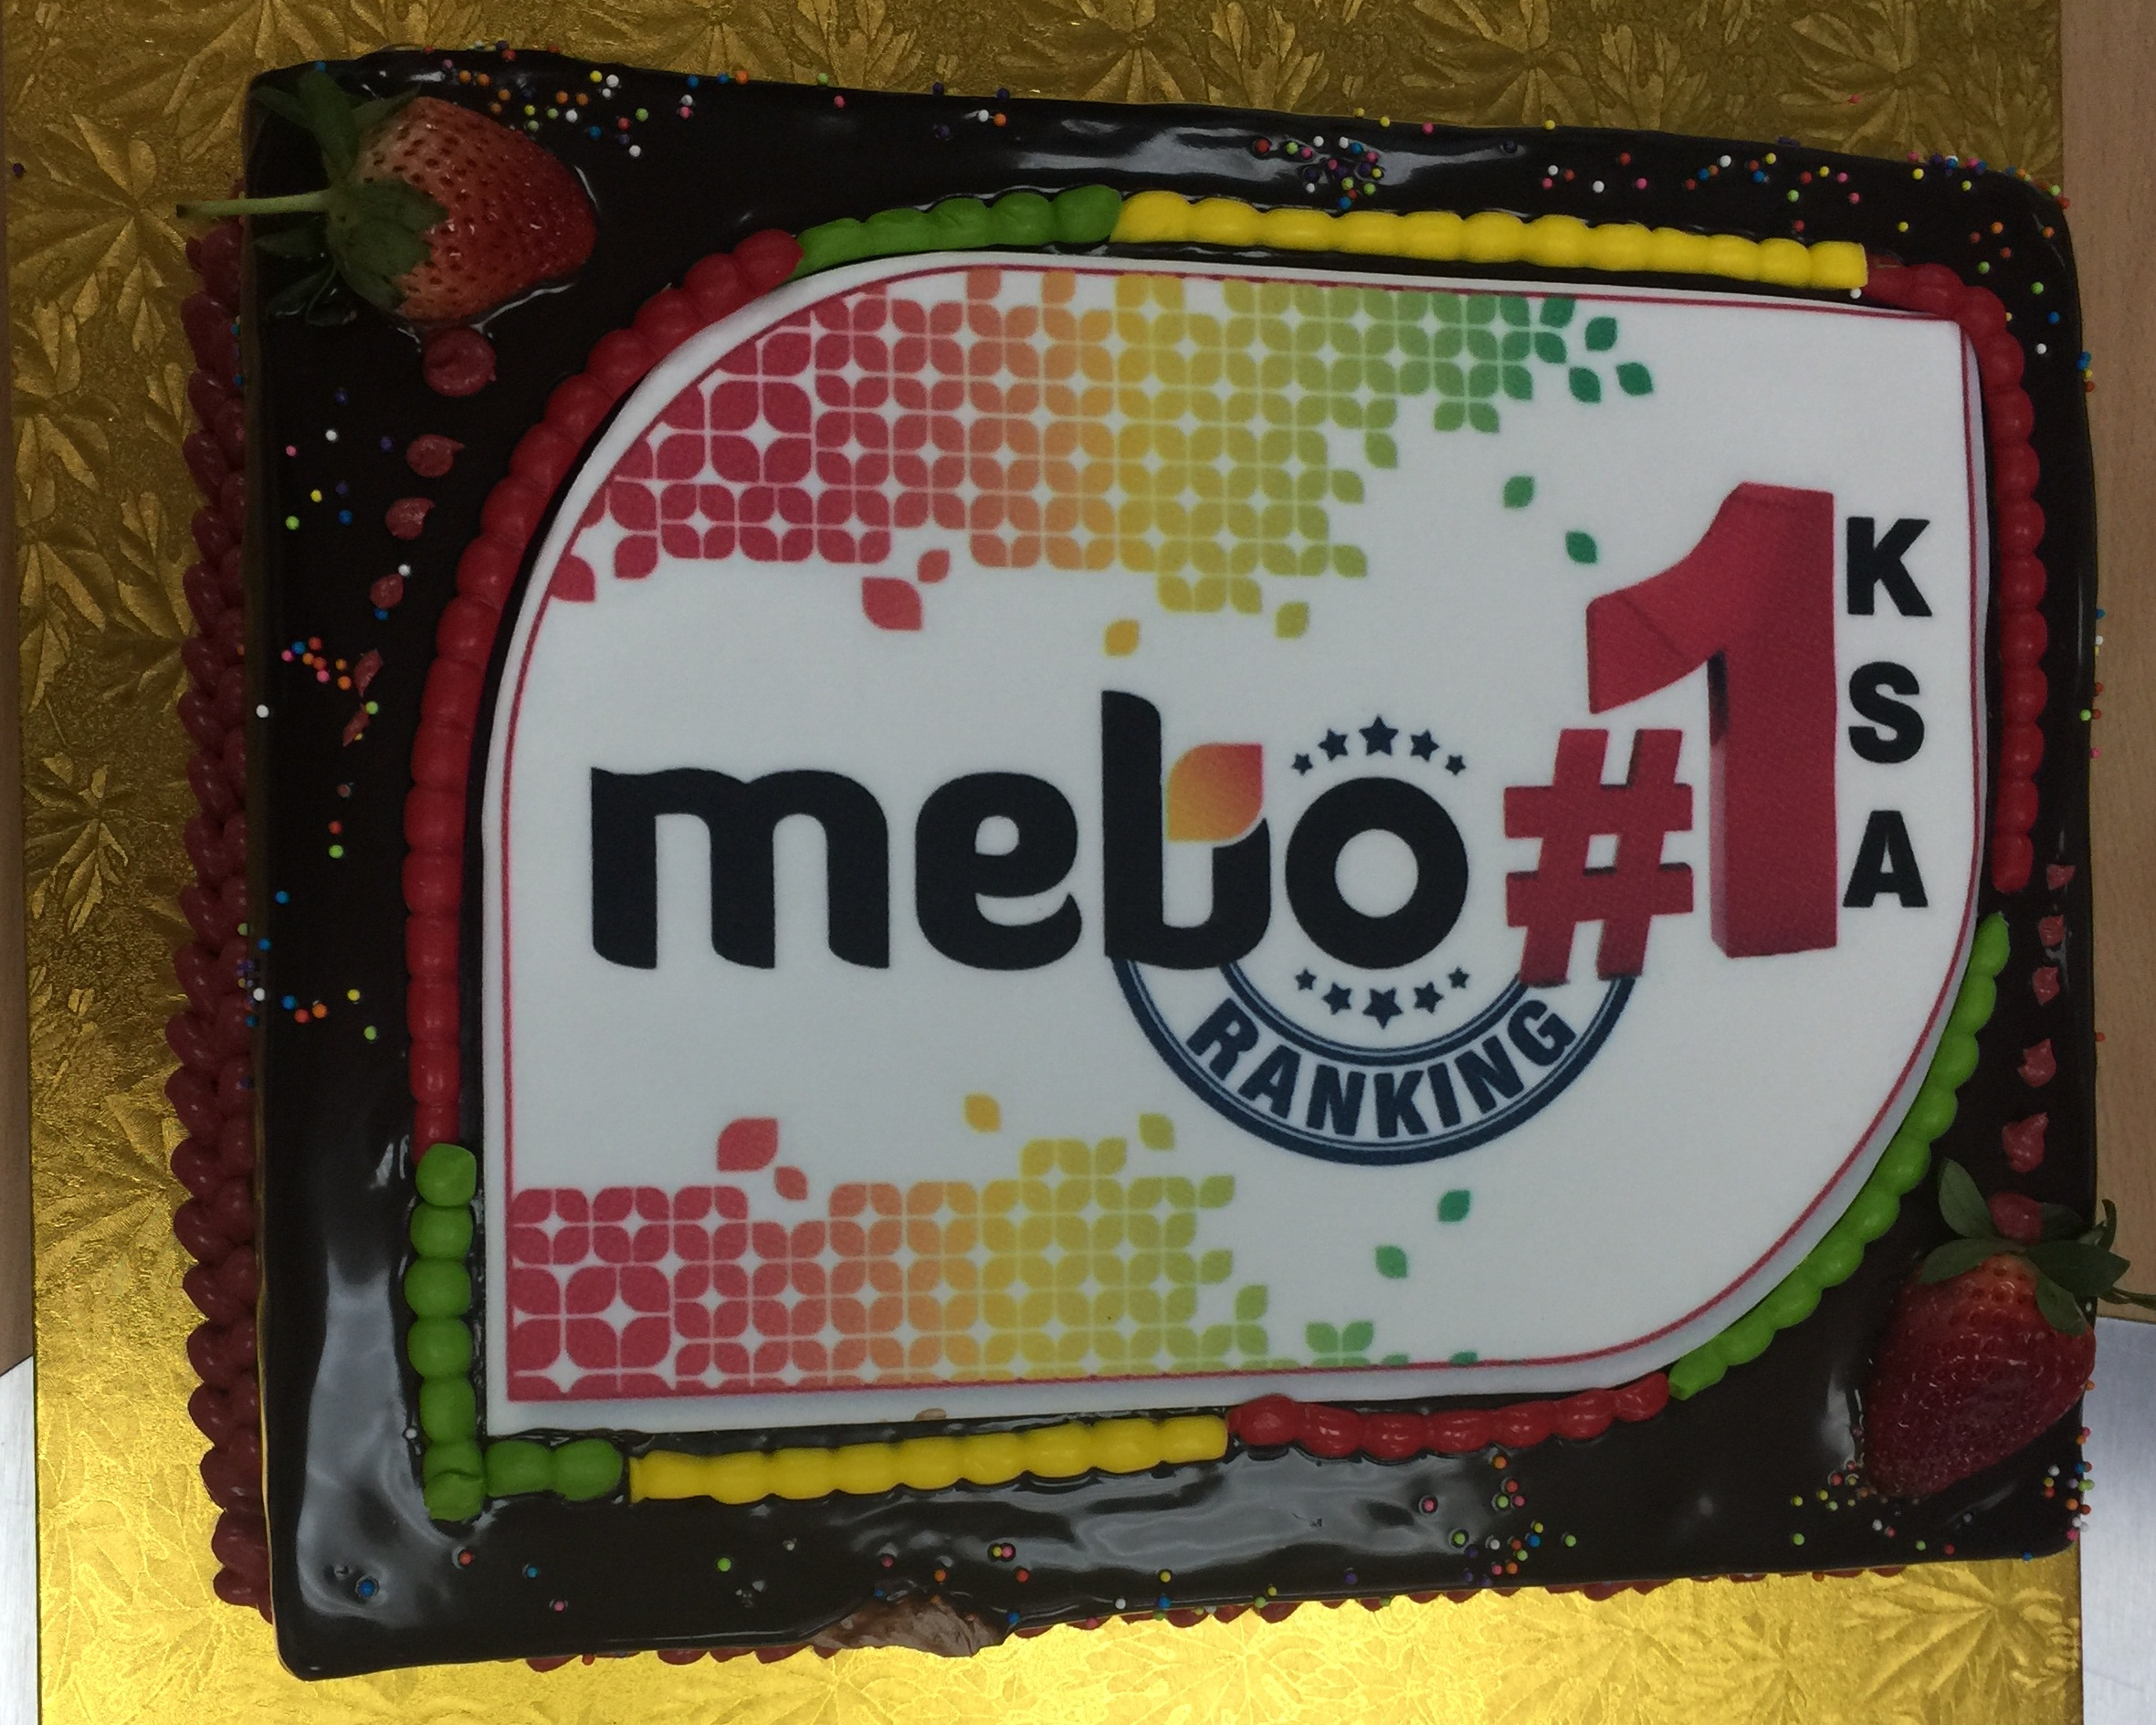 MEBO ranked No. 1 in Saudi Arabia